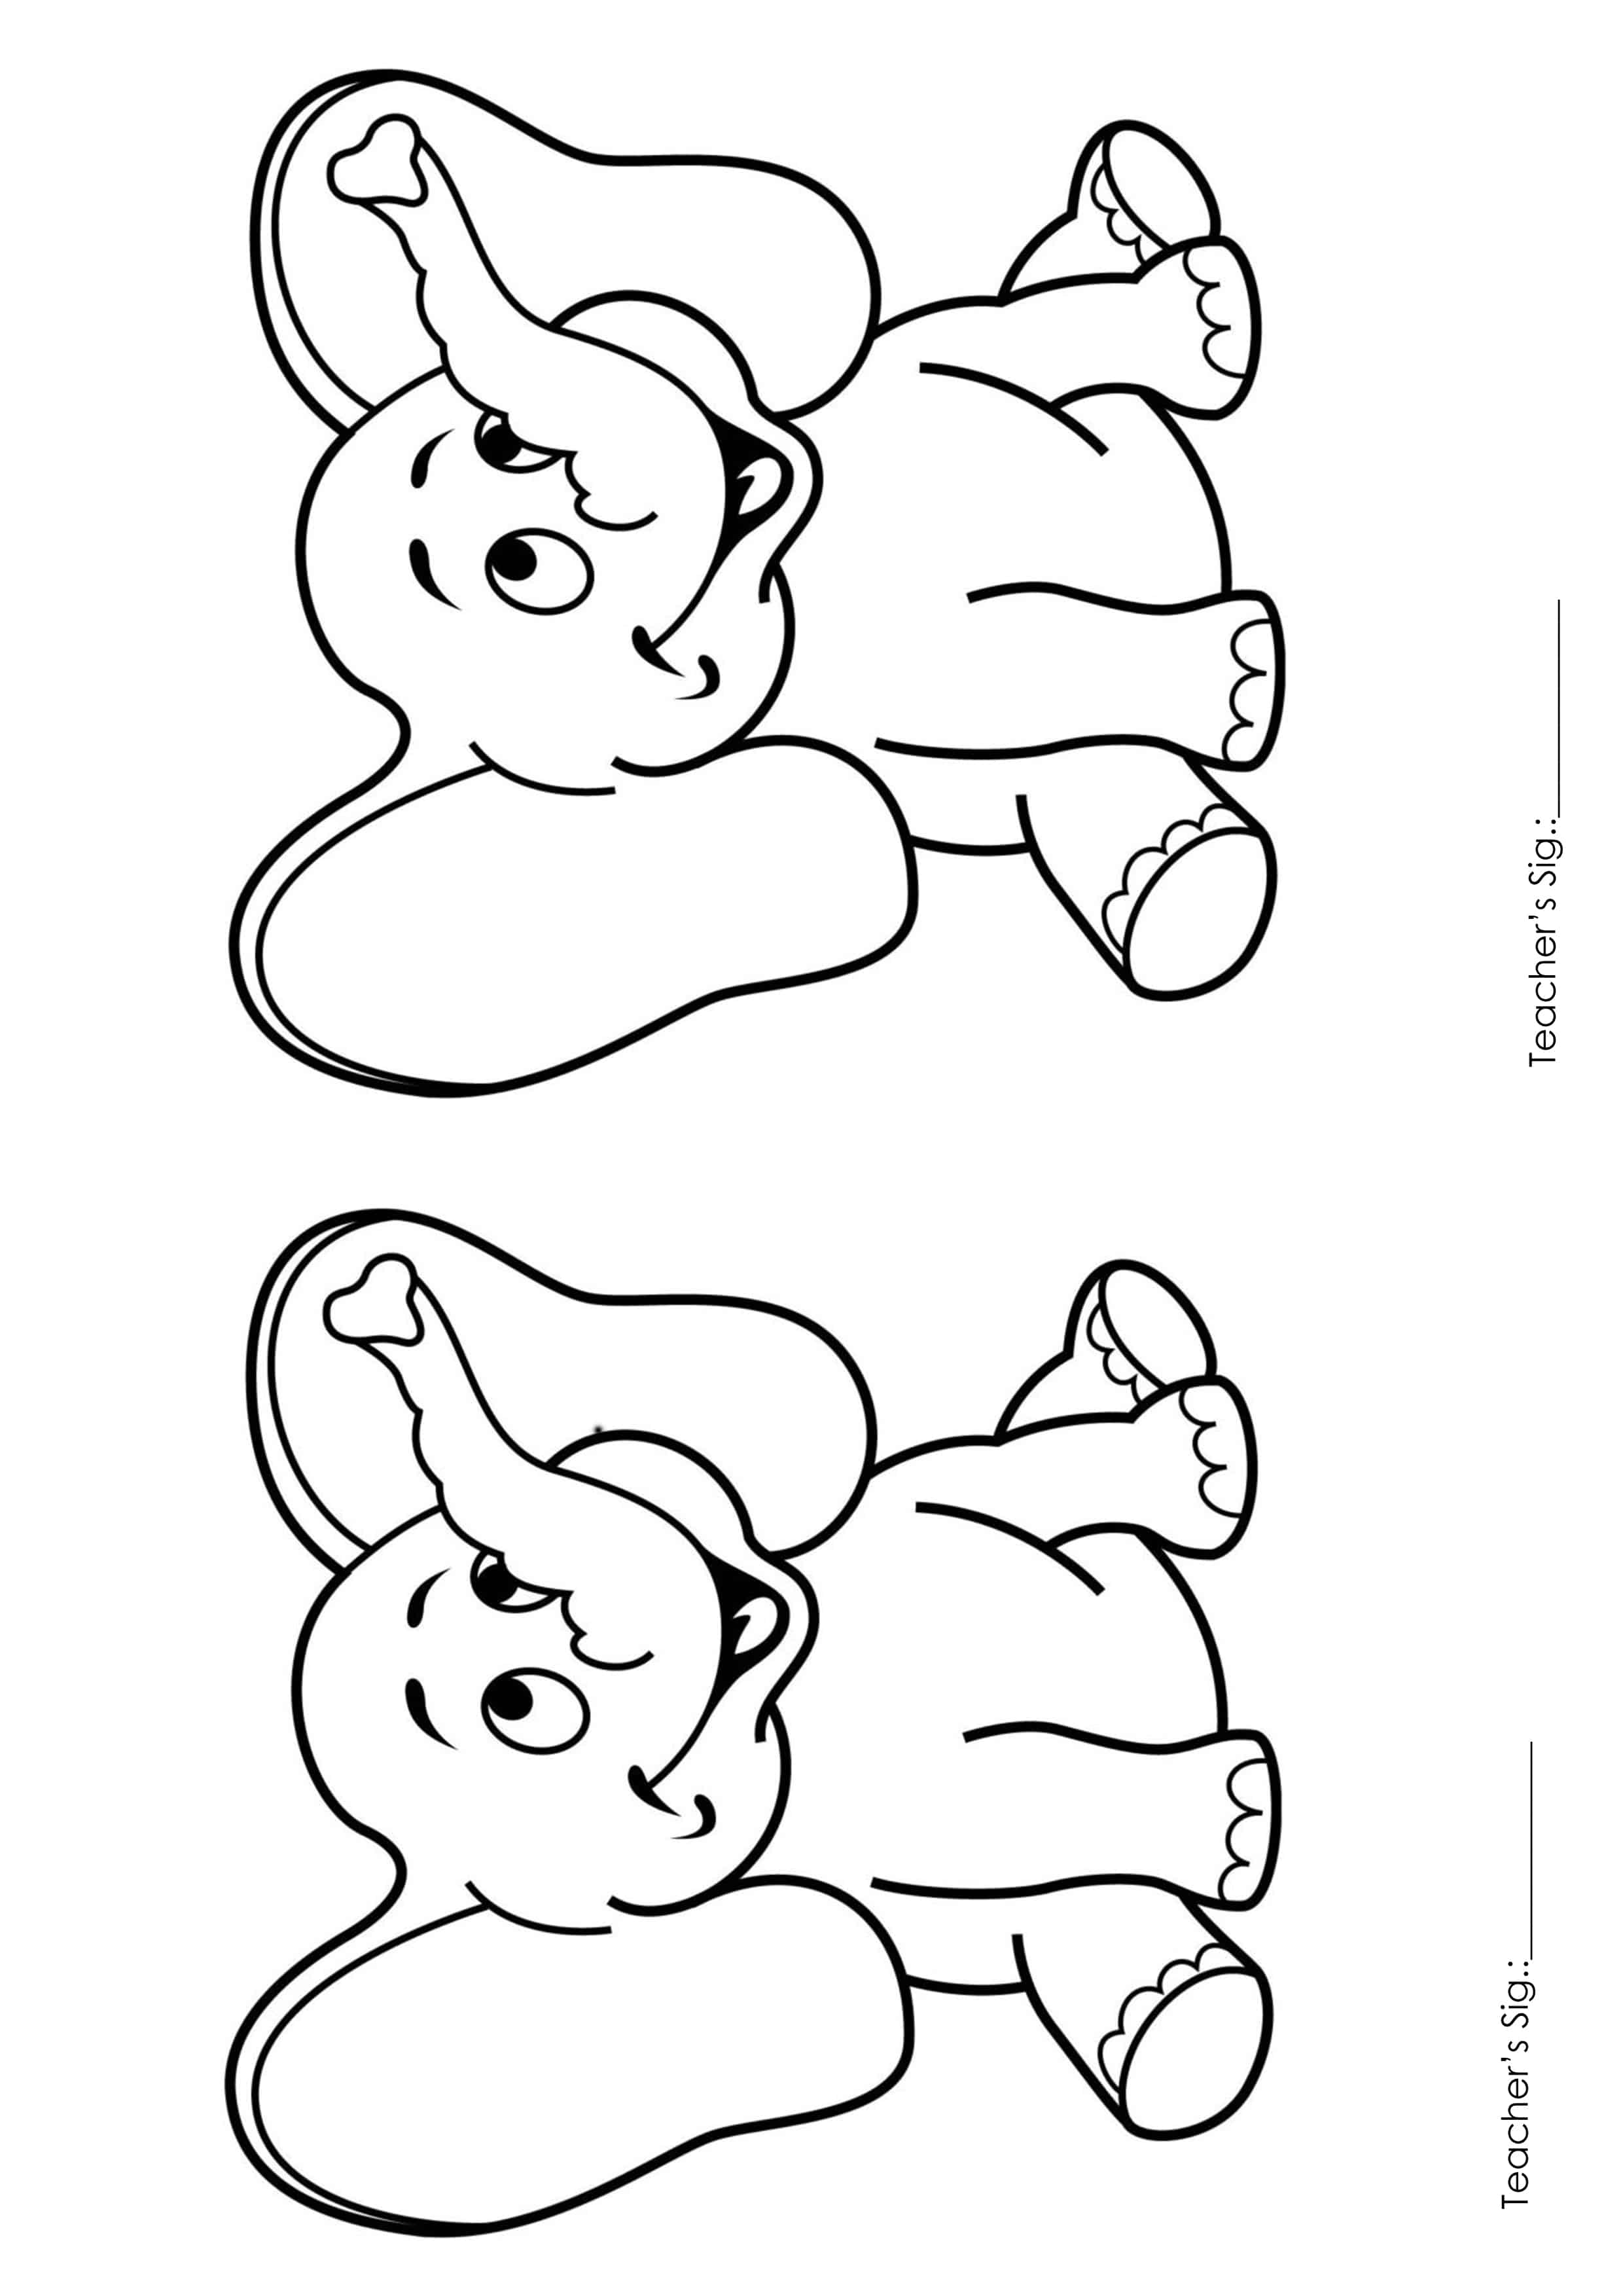 Printable Coloring Pages for Kids (Playgroup) A4 Size (1